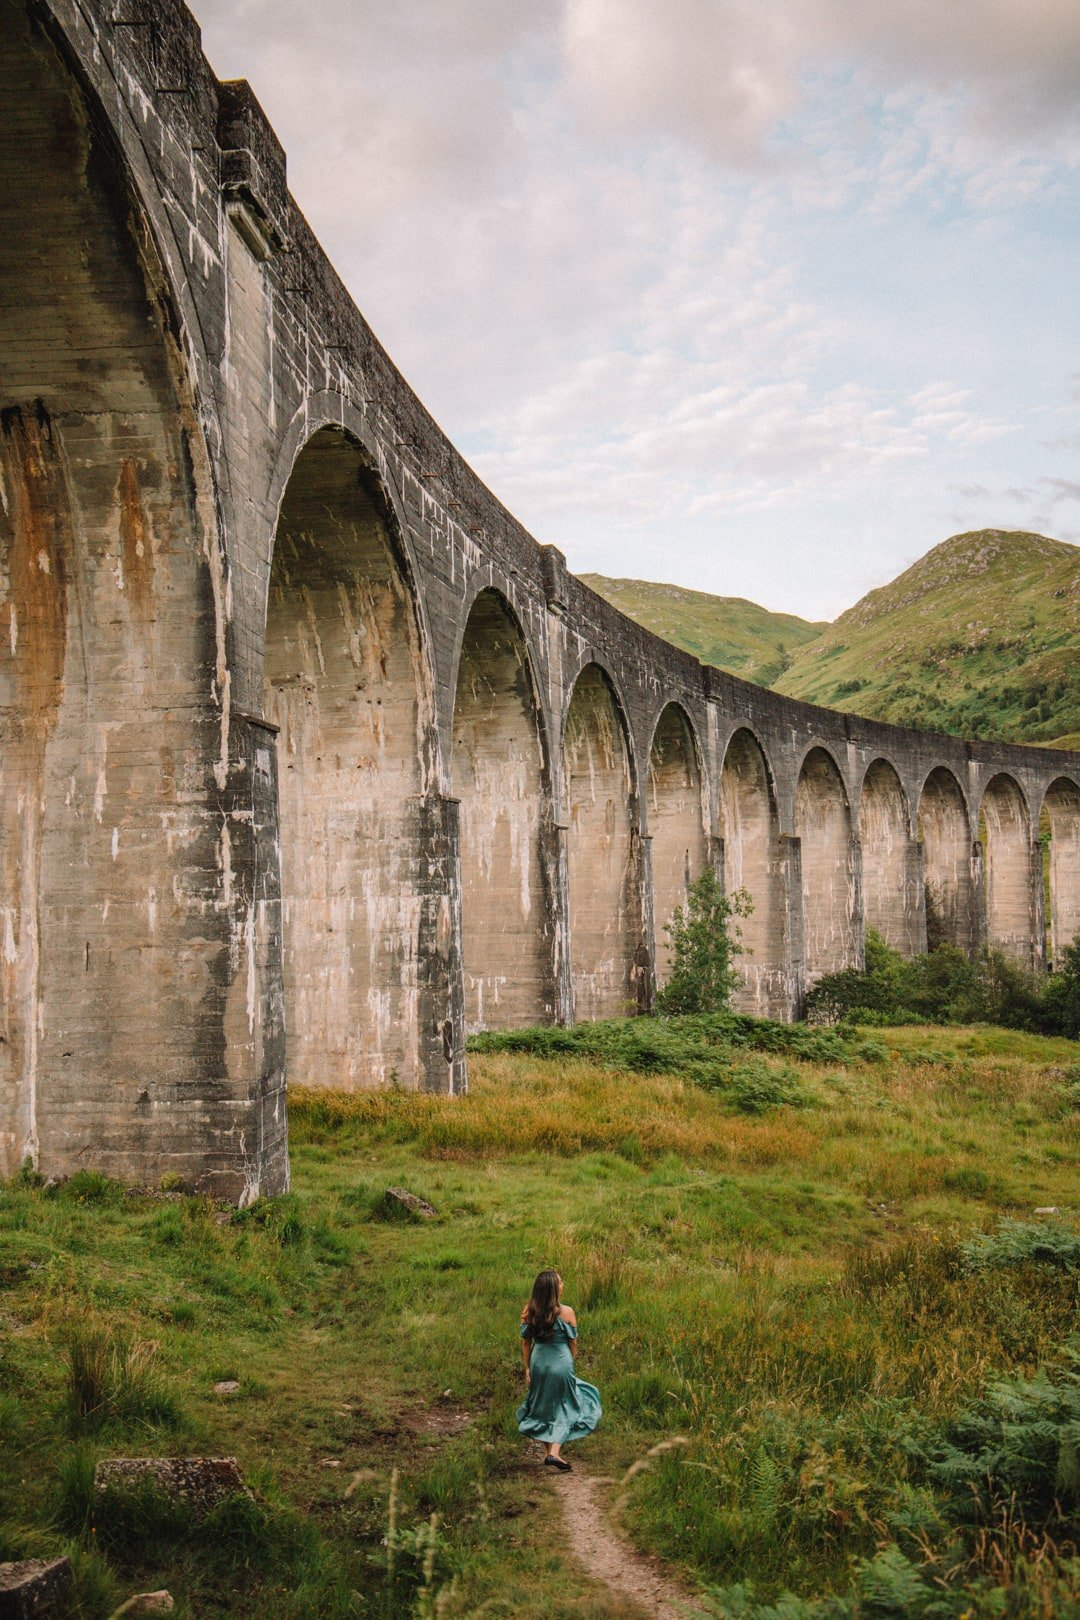 Girl at base of the Harry Potter bridge in Scotland, one of the most Instagrammable places in Scotland, best places for landscape photography in scotland